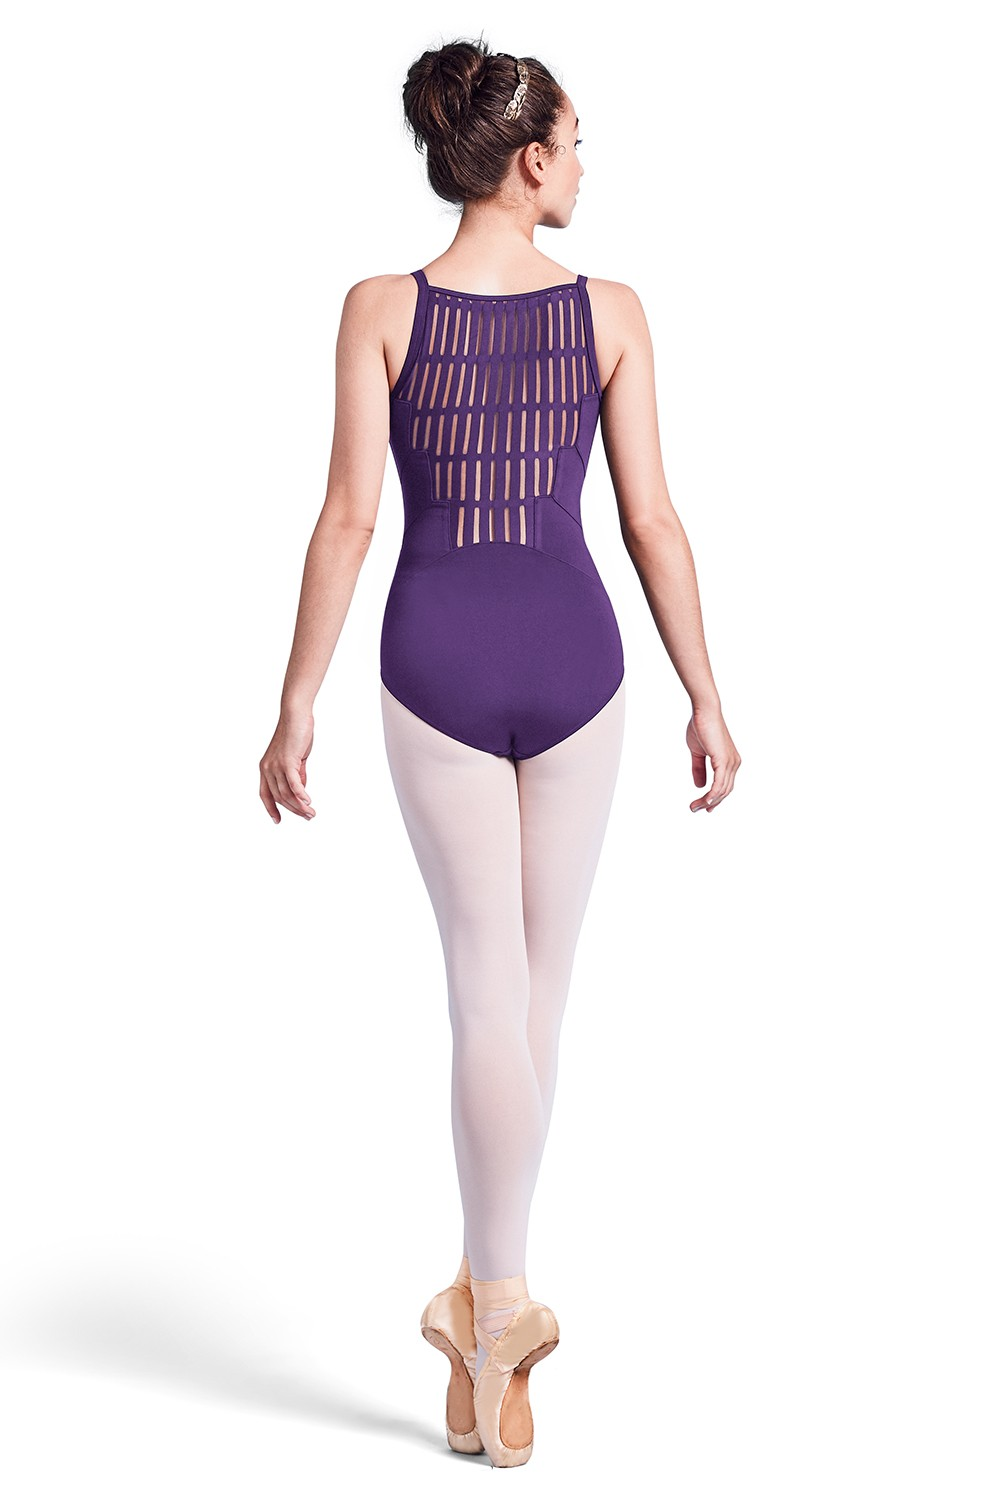 Wide Strap Camisole Leotard Women's Dance Leotards